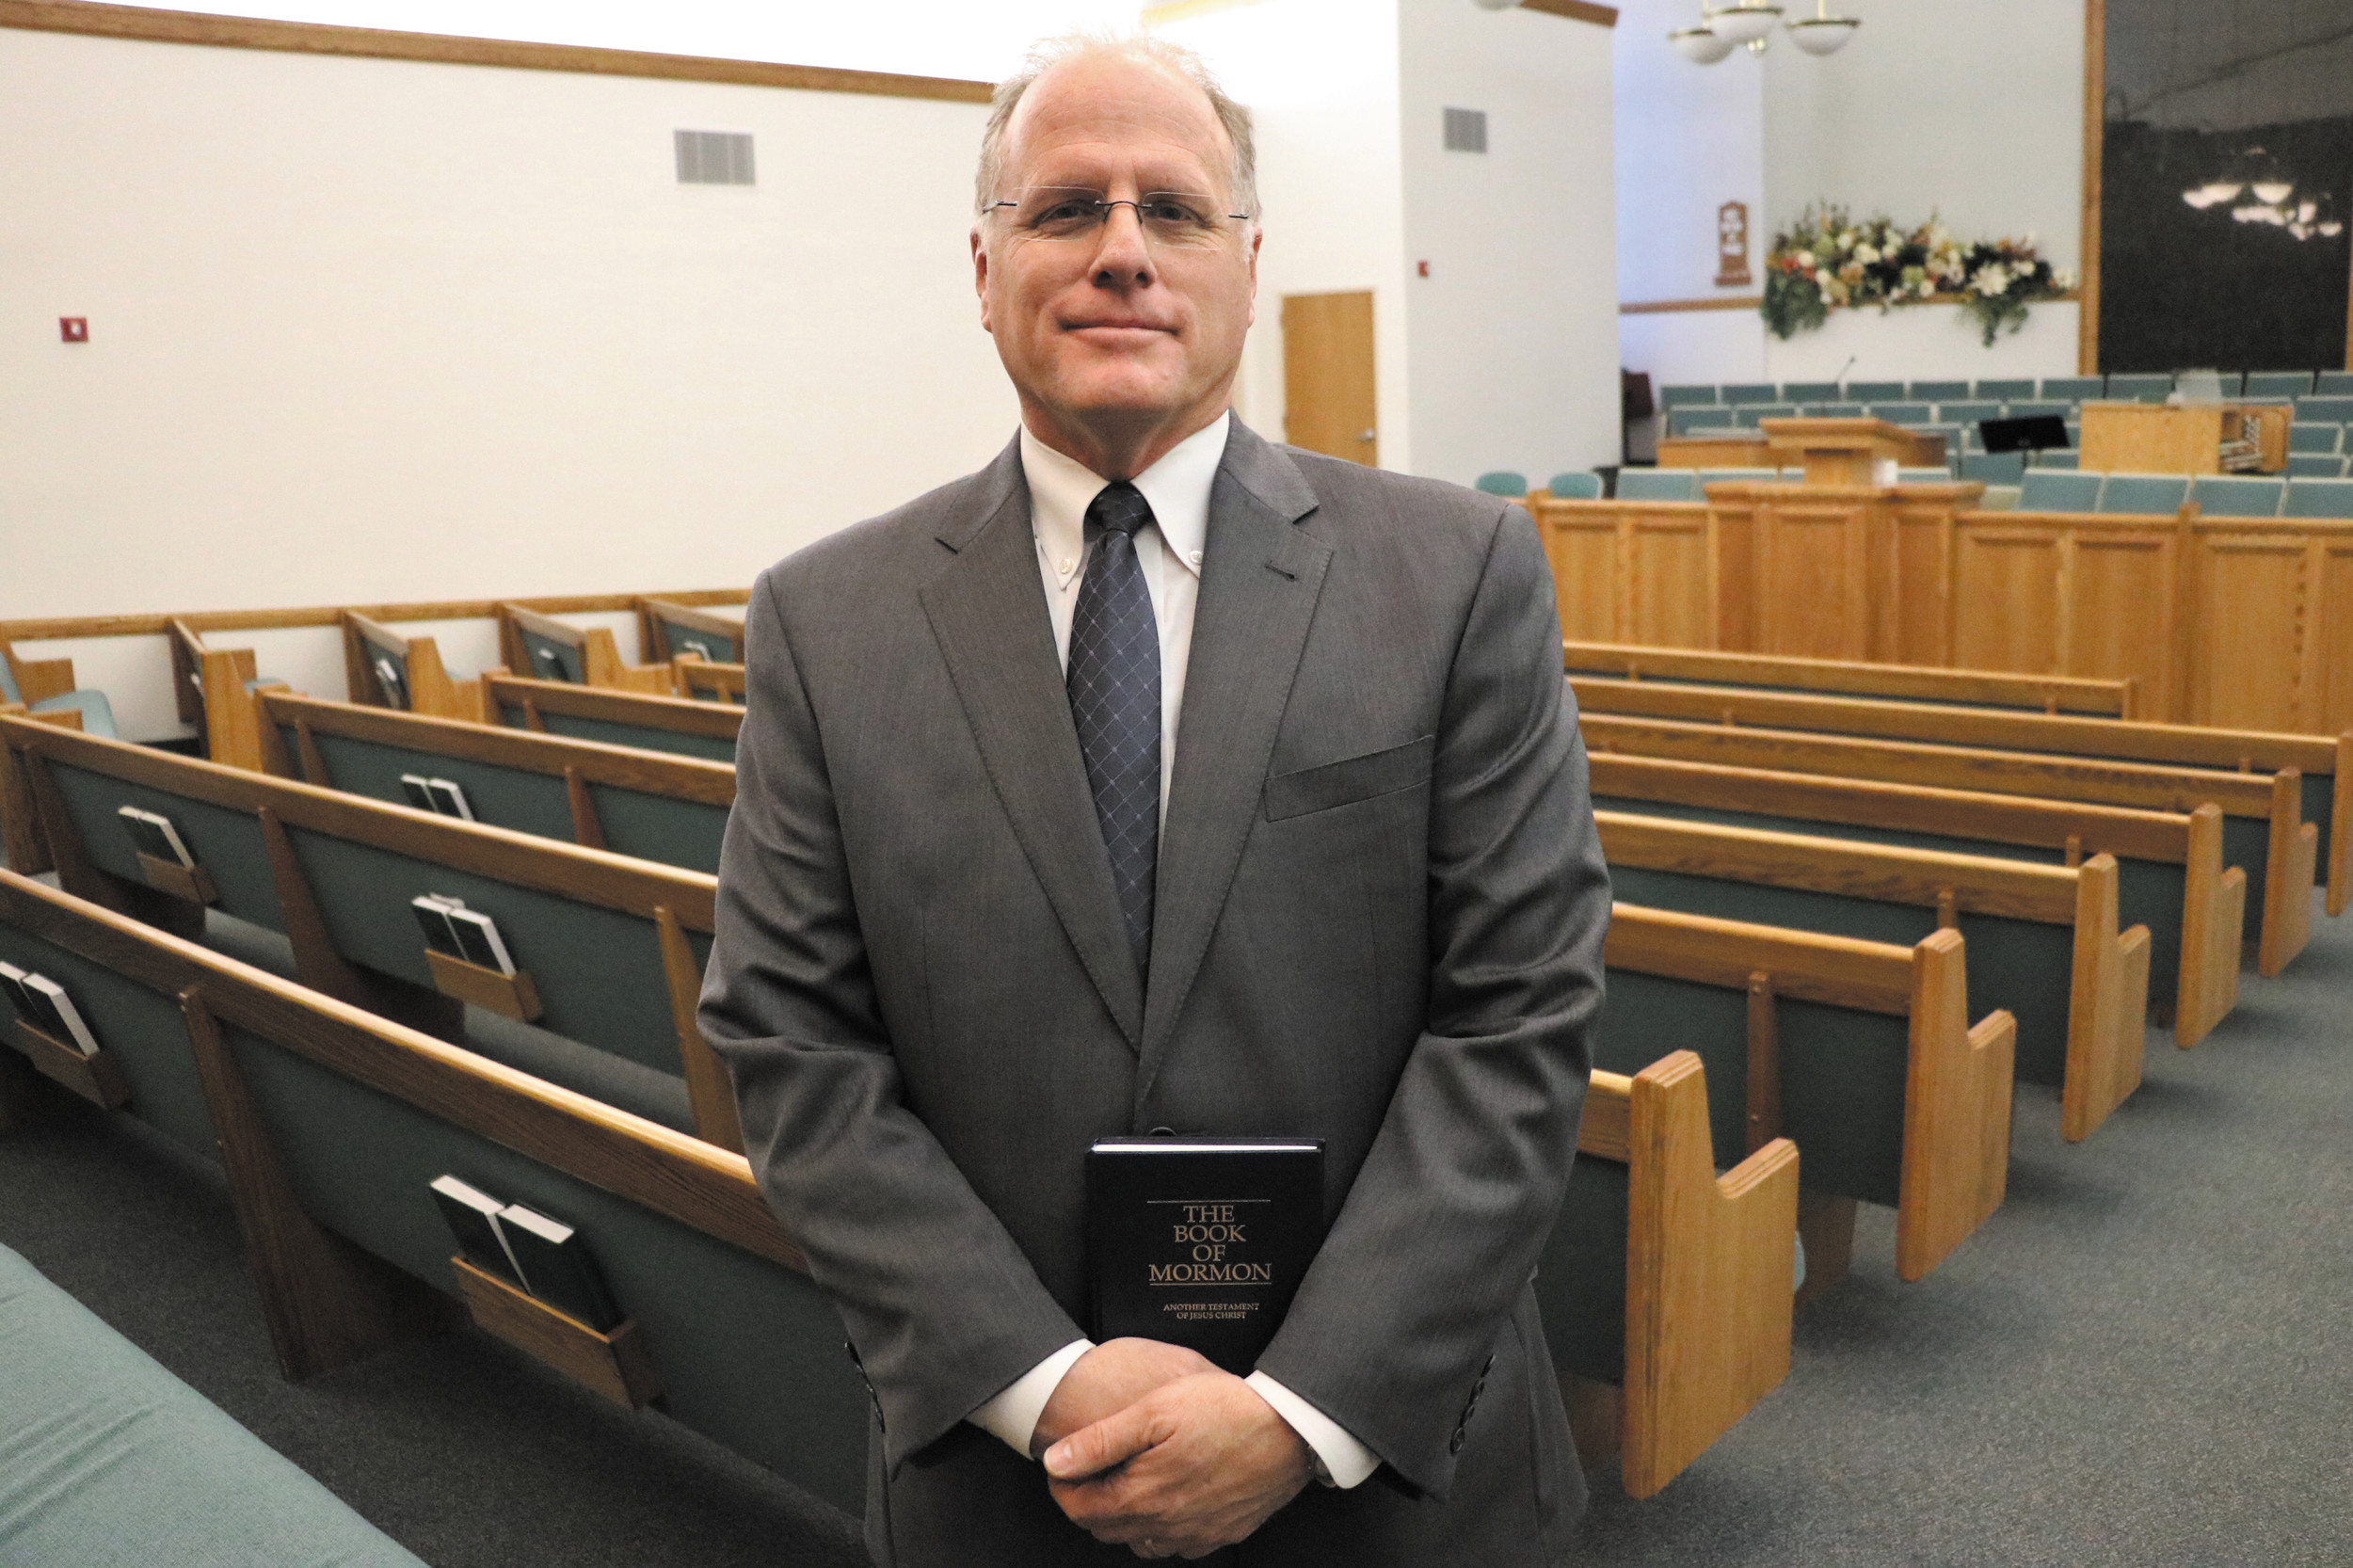 Mormons take a journey both outward and inward